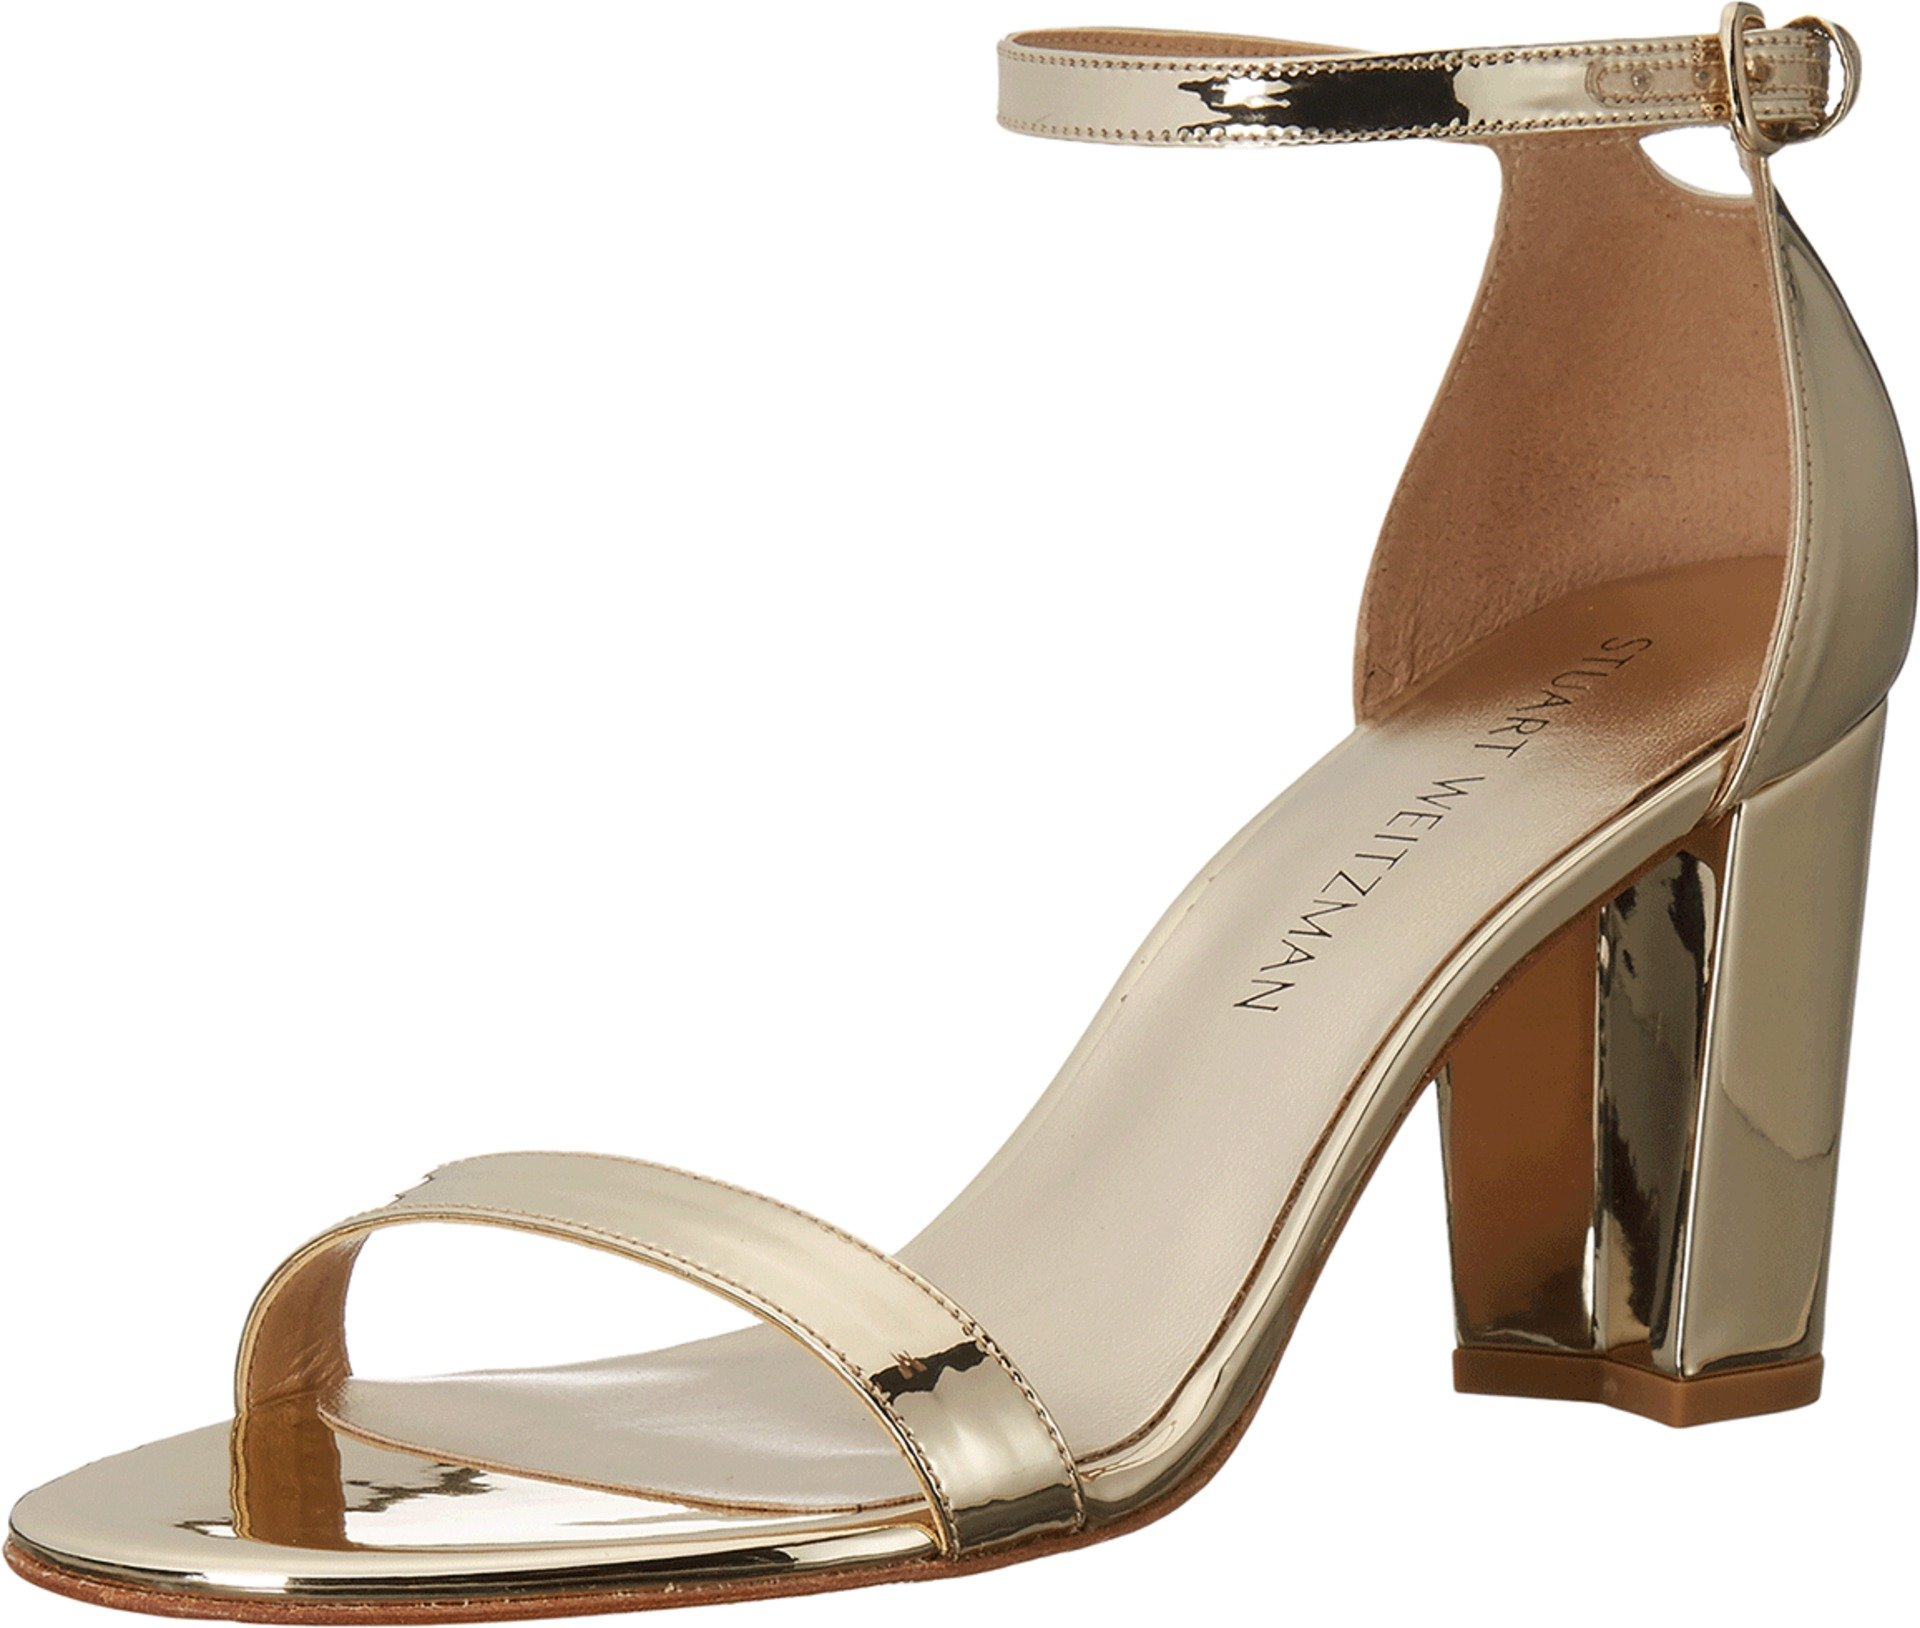 Stuart Weitzman Women's Nearlynude Pale Gold Glass Shoe by Stuart Weitzman